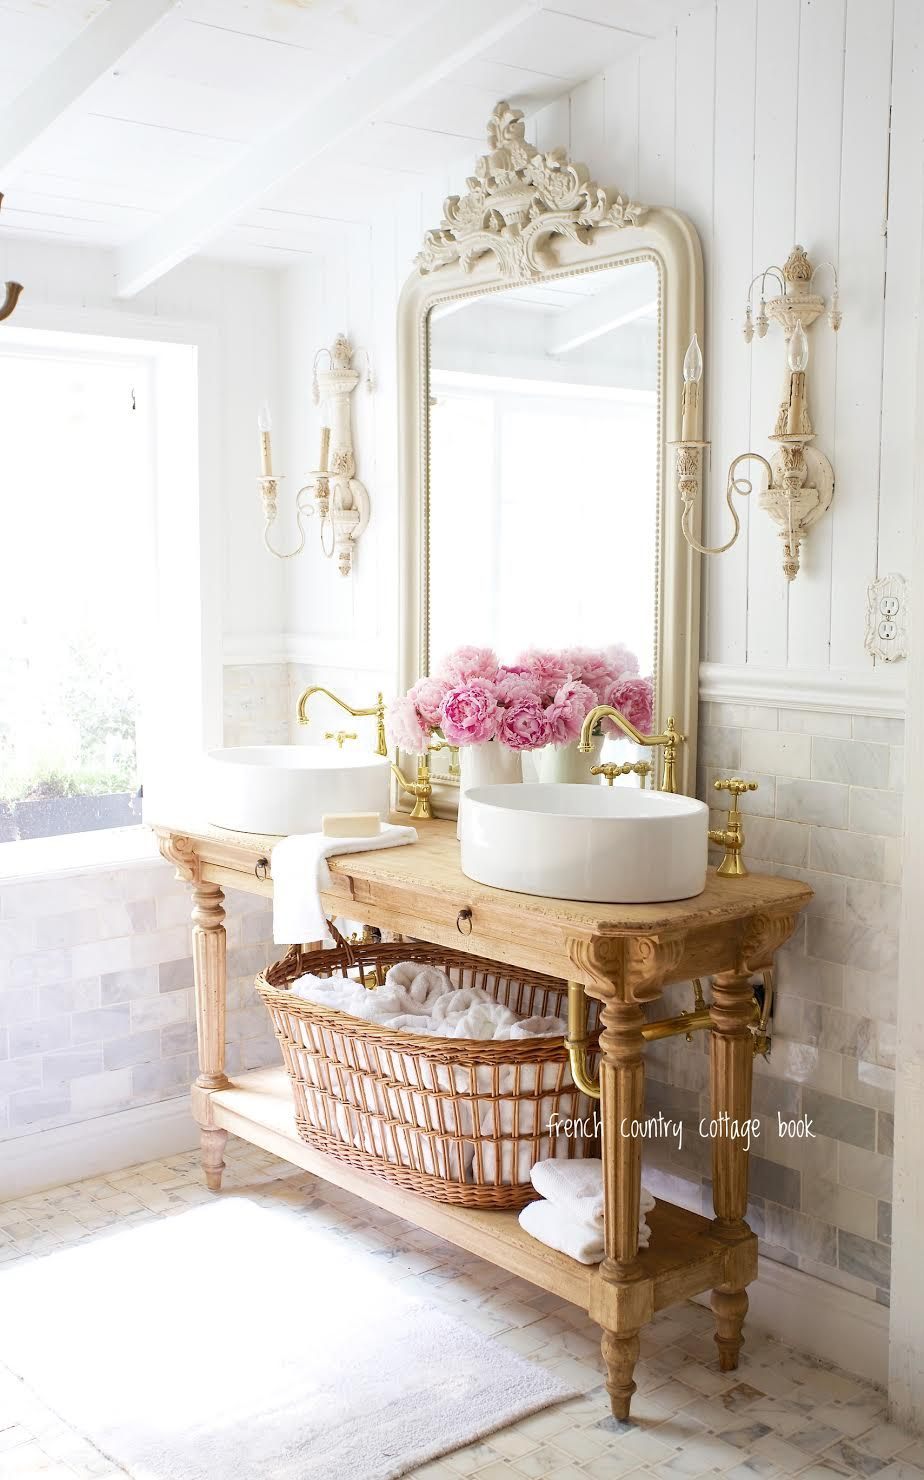 5 minute decorating- Five ways to style your bathroom for summer guests - French Country Cottage